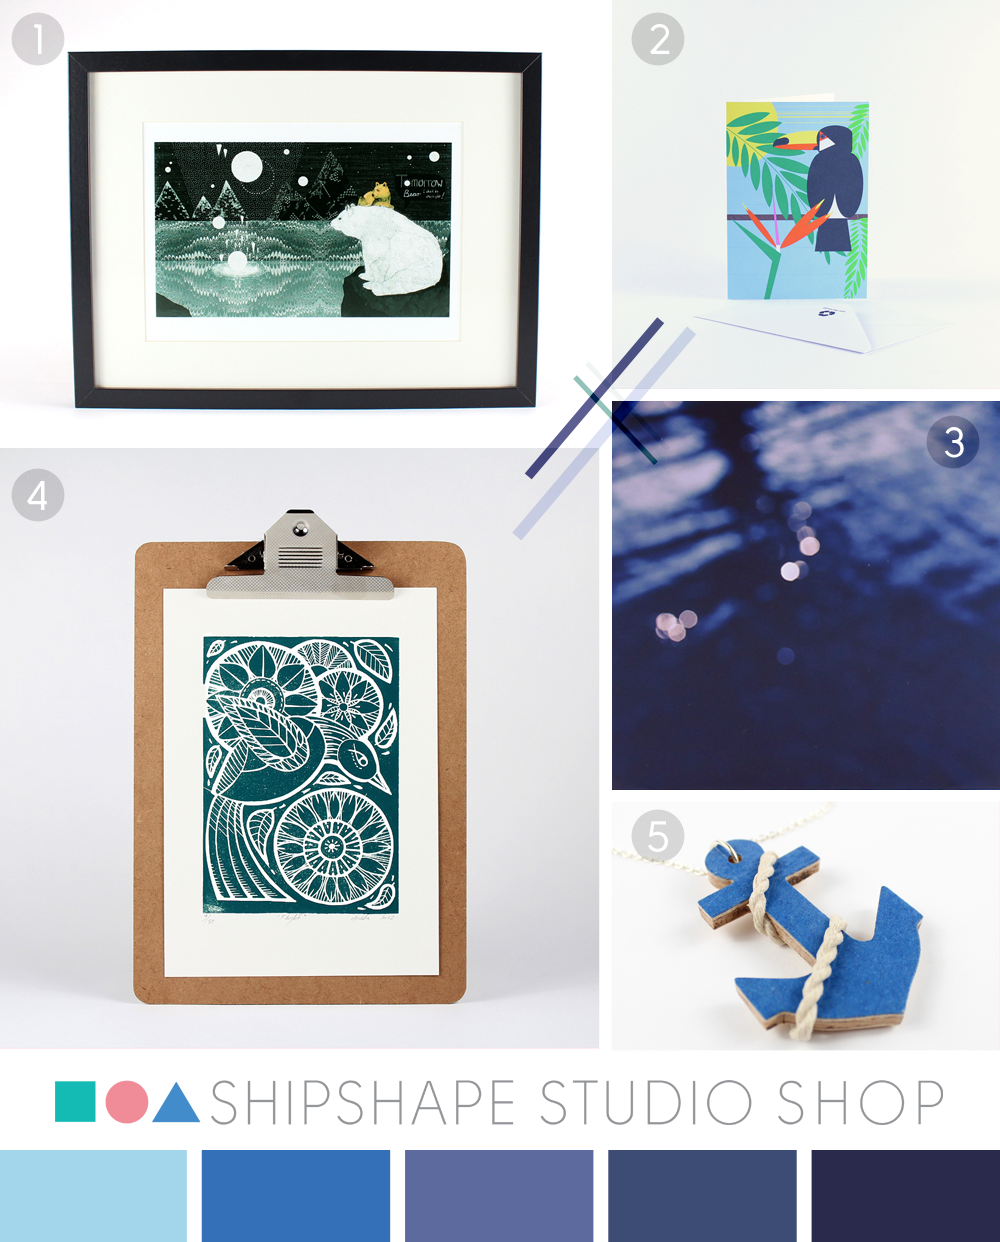 In the Shipshape Studio shop blues